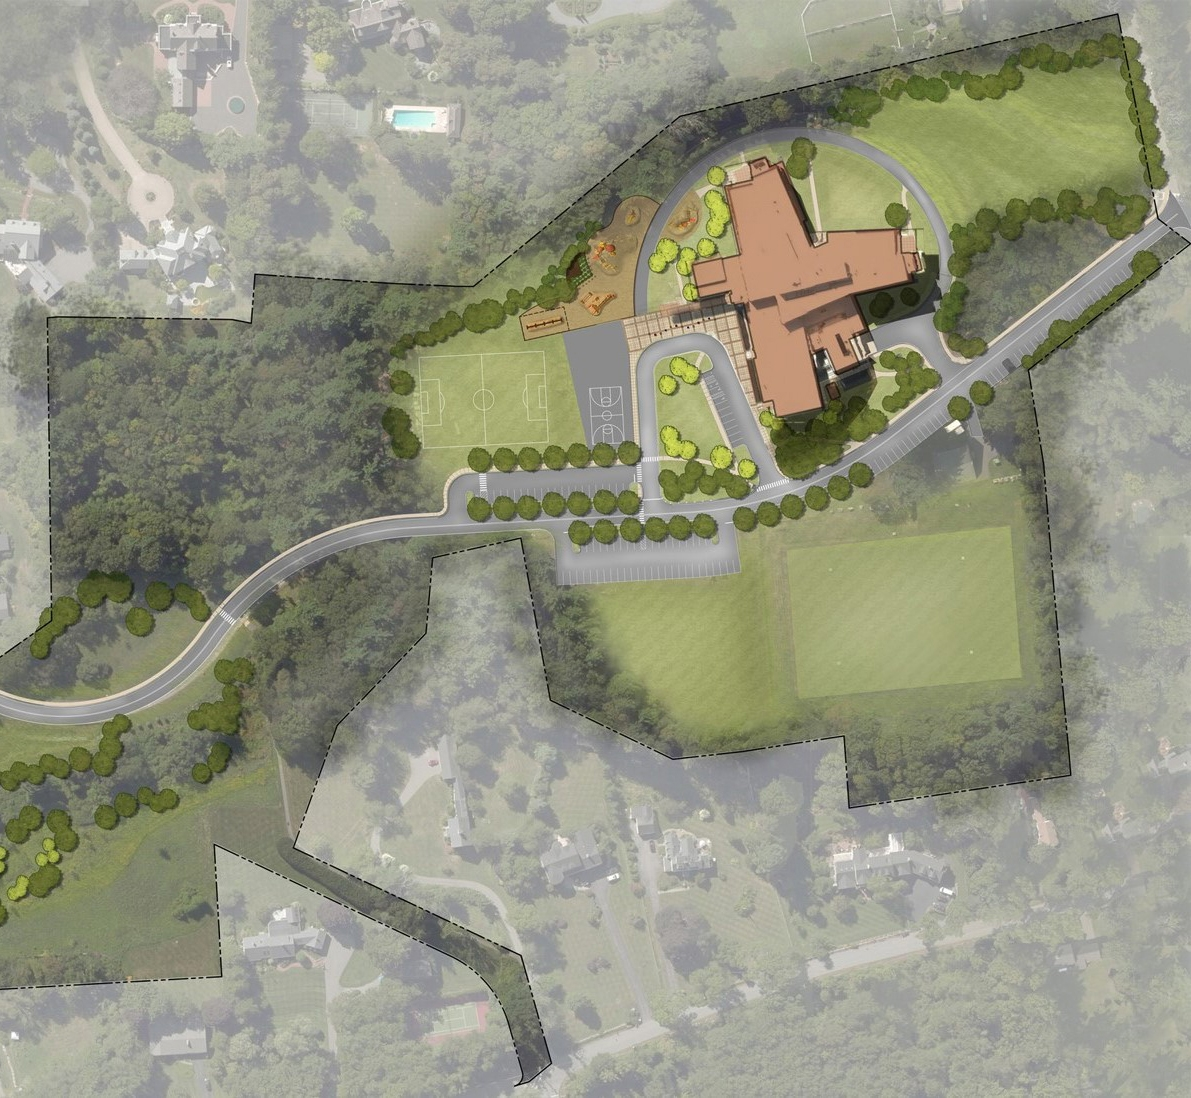 Bancroft Elementary School Site Plan, design by SMMA